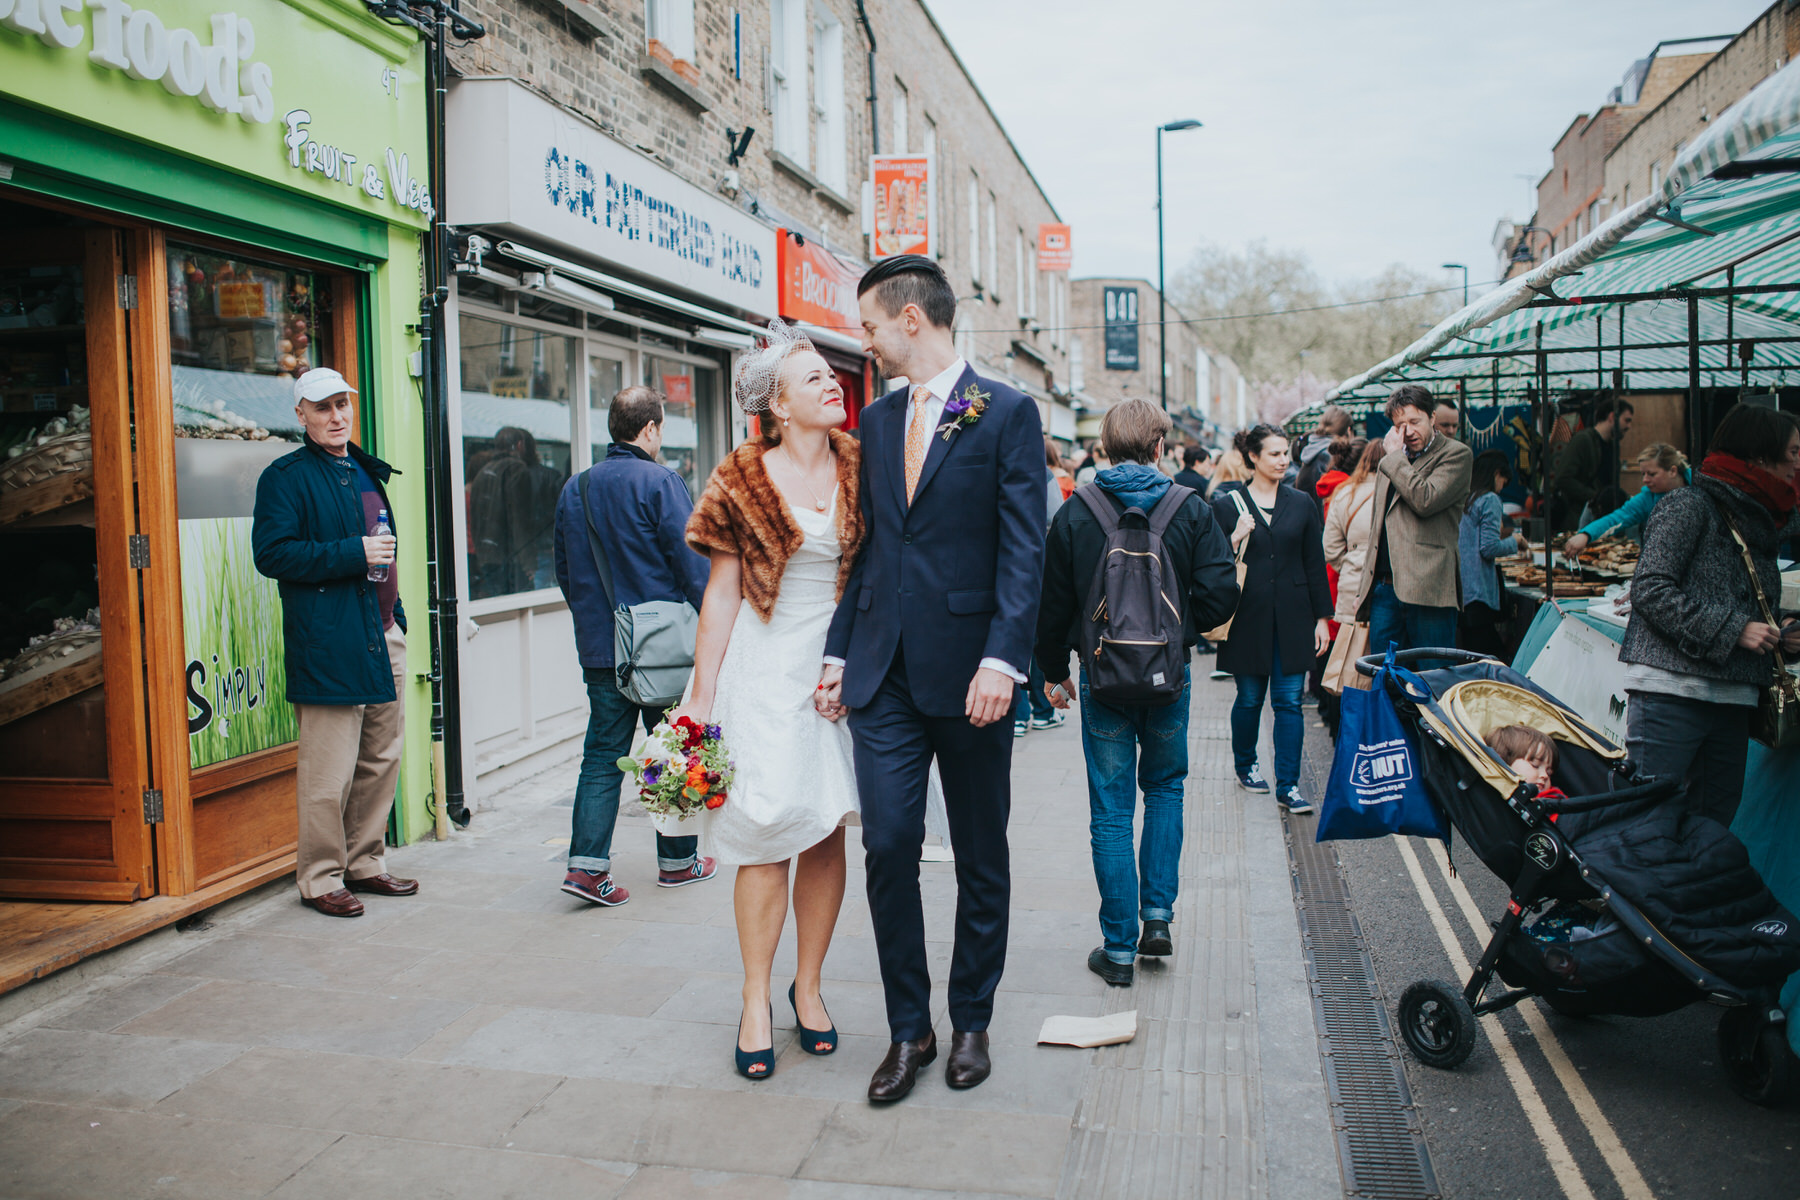 MS-Londesborough-Pub-wedding-Hackney-alternative-photographer-17-Broadway-market-wedding-photos-groom-holding-hands-bride.jpg